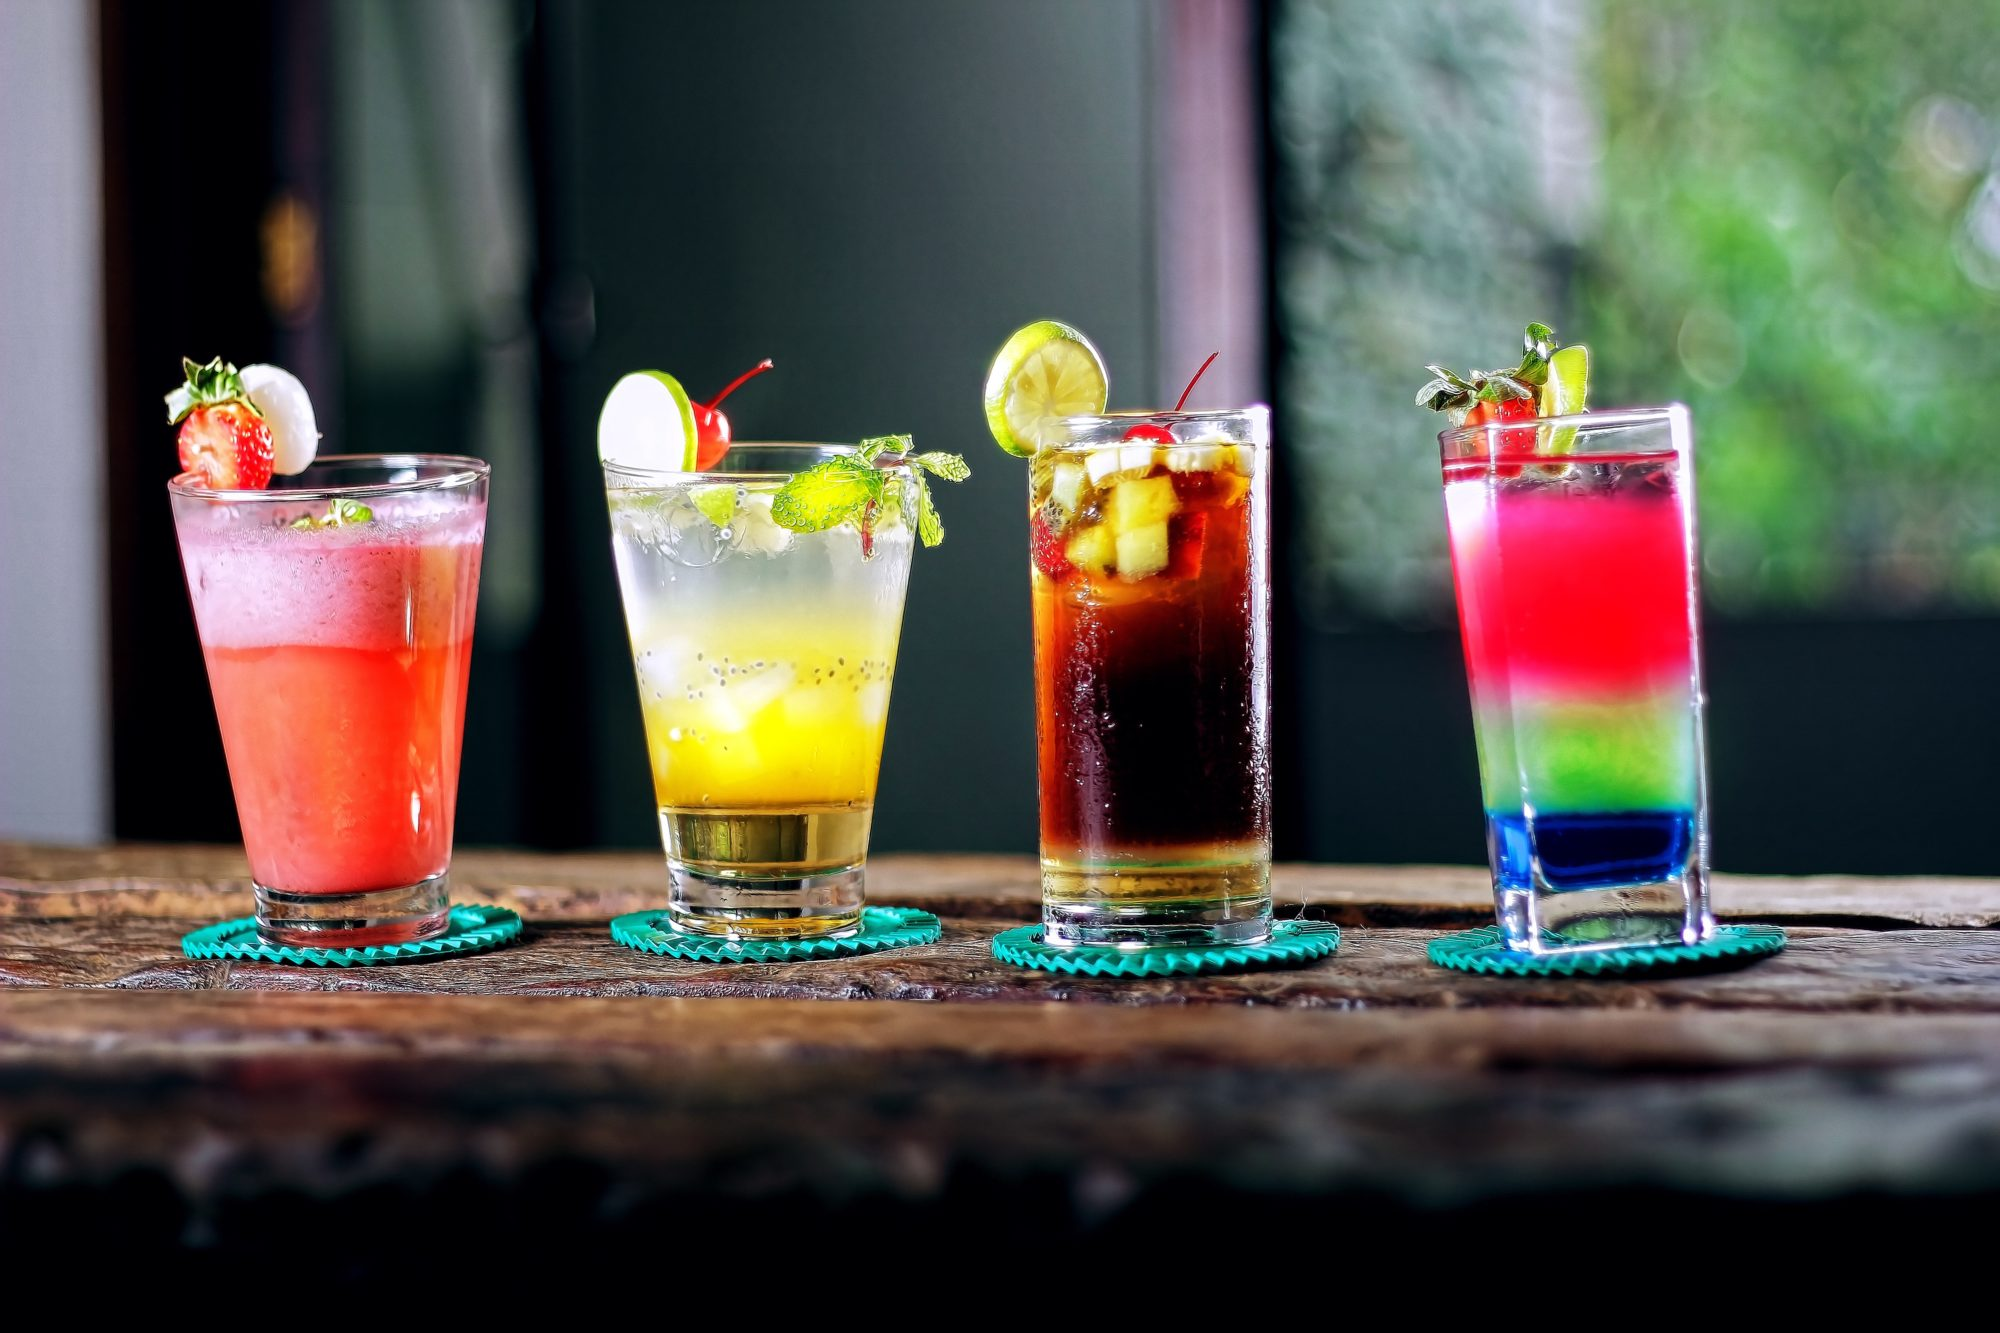 MixMyCocktail